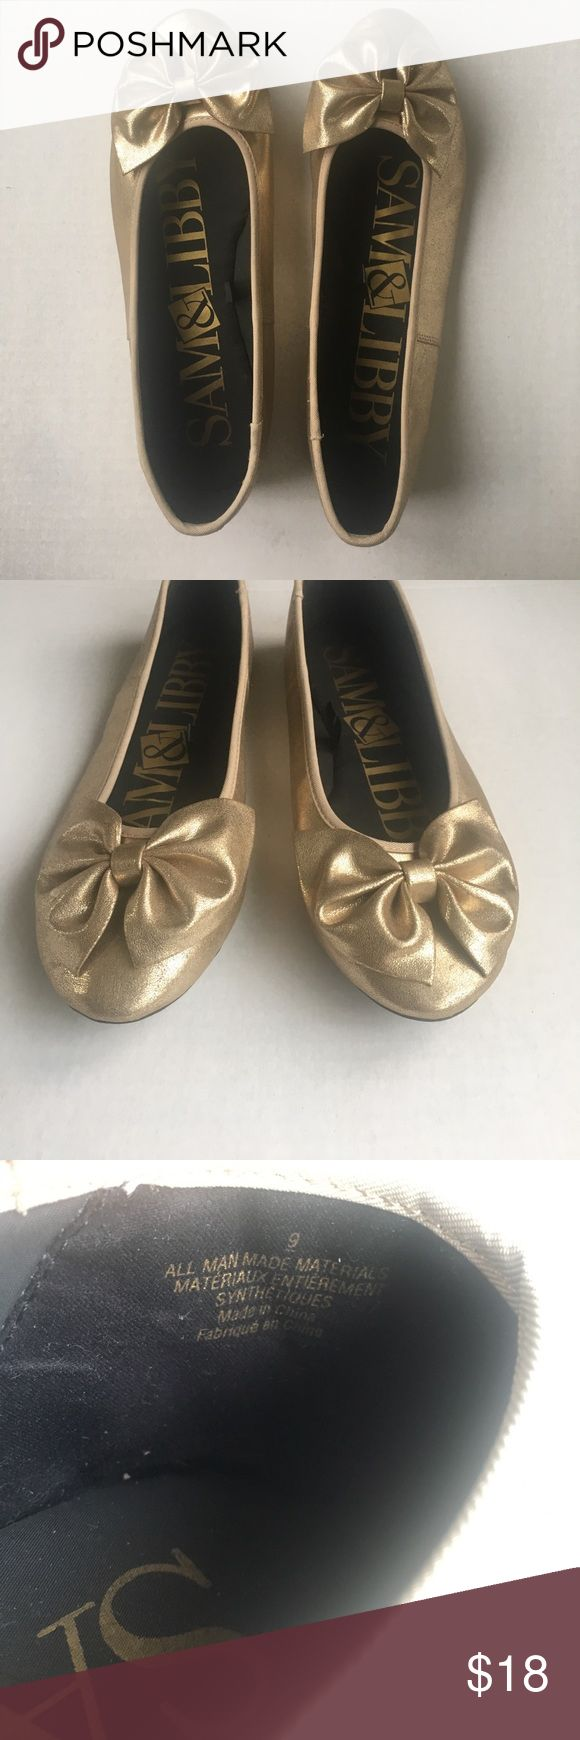 Gold ballet flats with adorable bow Sam & Libby ballet flats in beautiful shimmery gold color. Such a cute shoe! Great condition. Only worn a few times. Sam & Libby Shoes Flats & Loafers